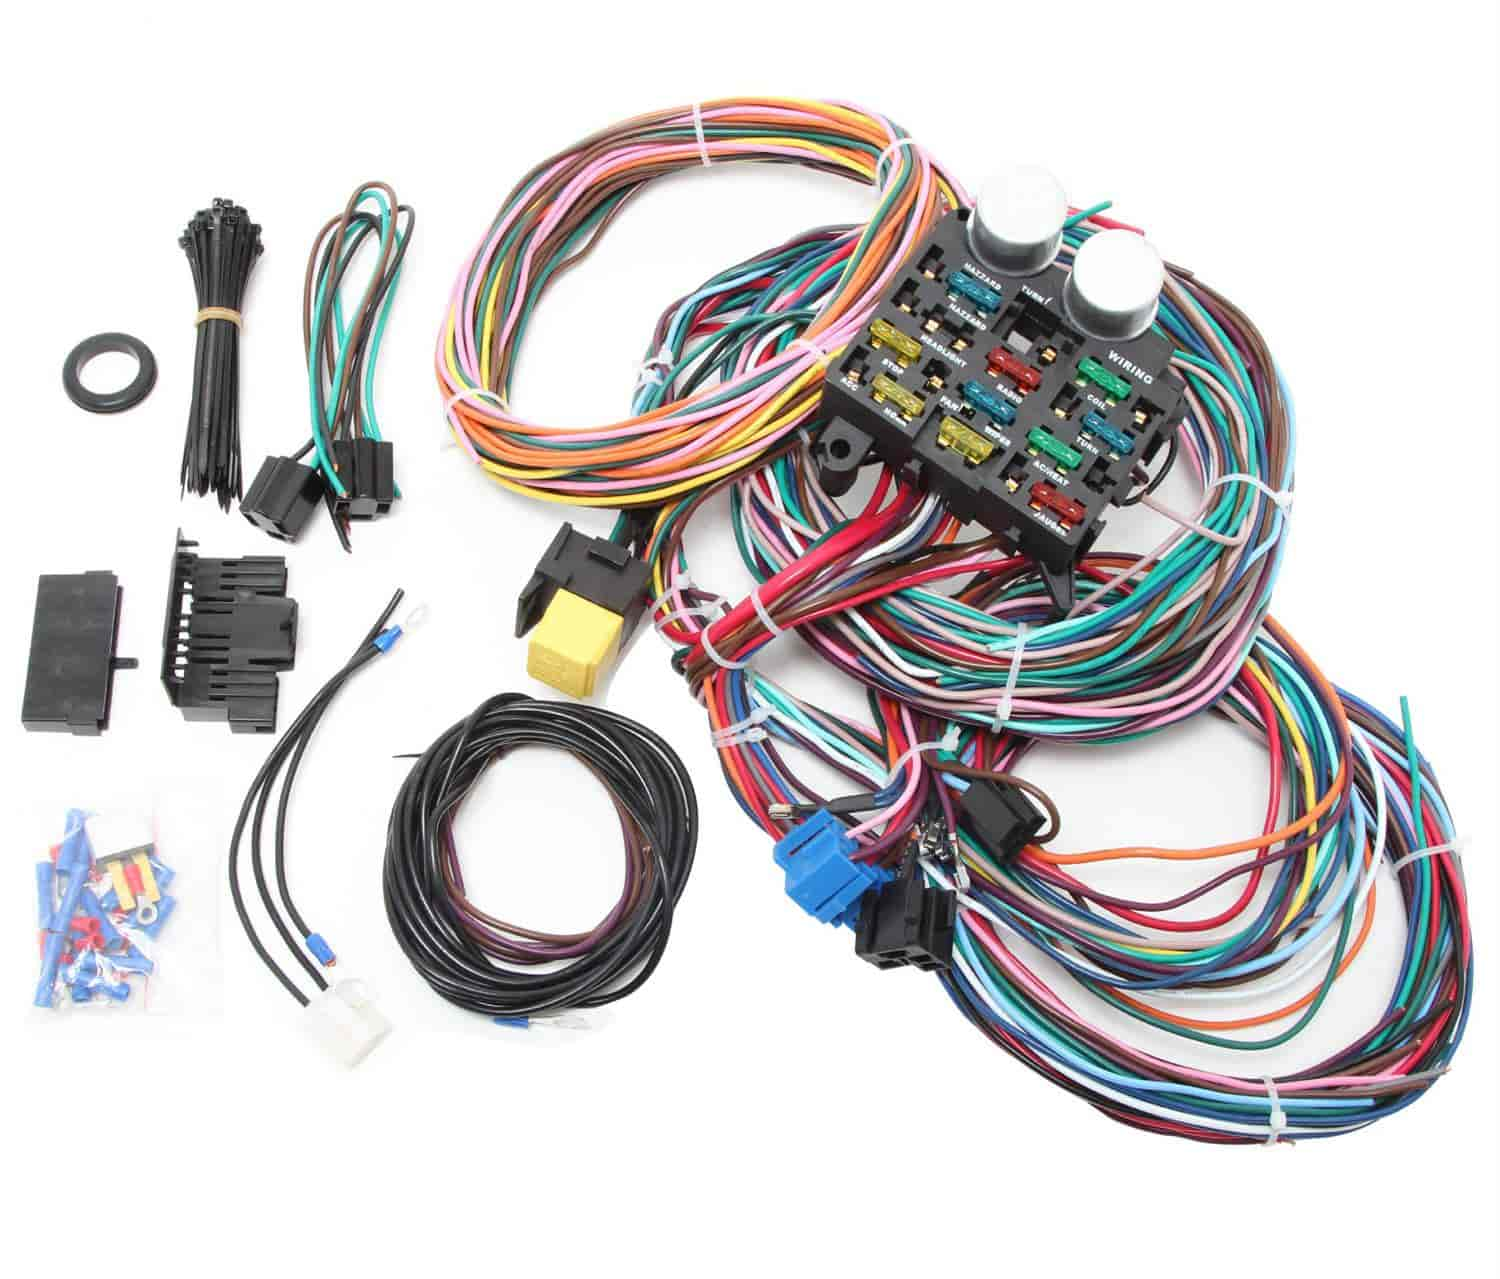 707 r1002x rpc r1002x universal 12 circuit wire harness kit jegs jegs universal wiring harness at webbmarketing.co